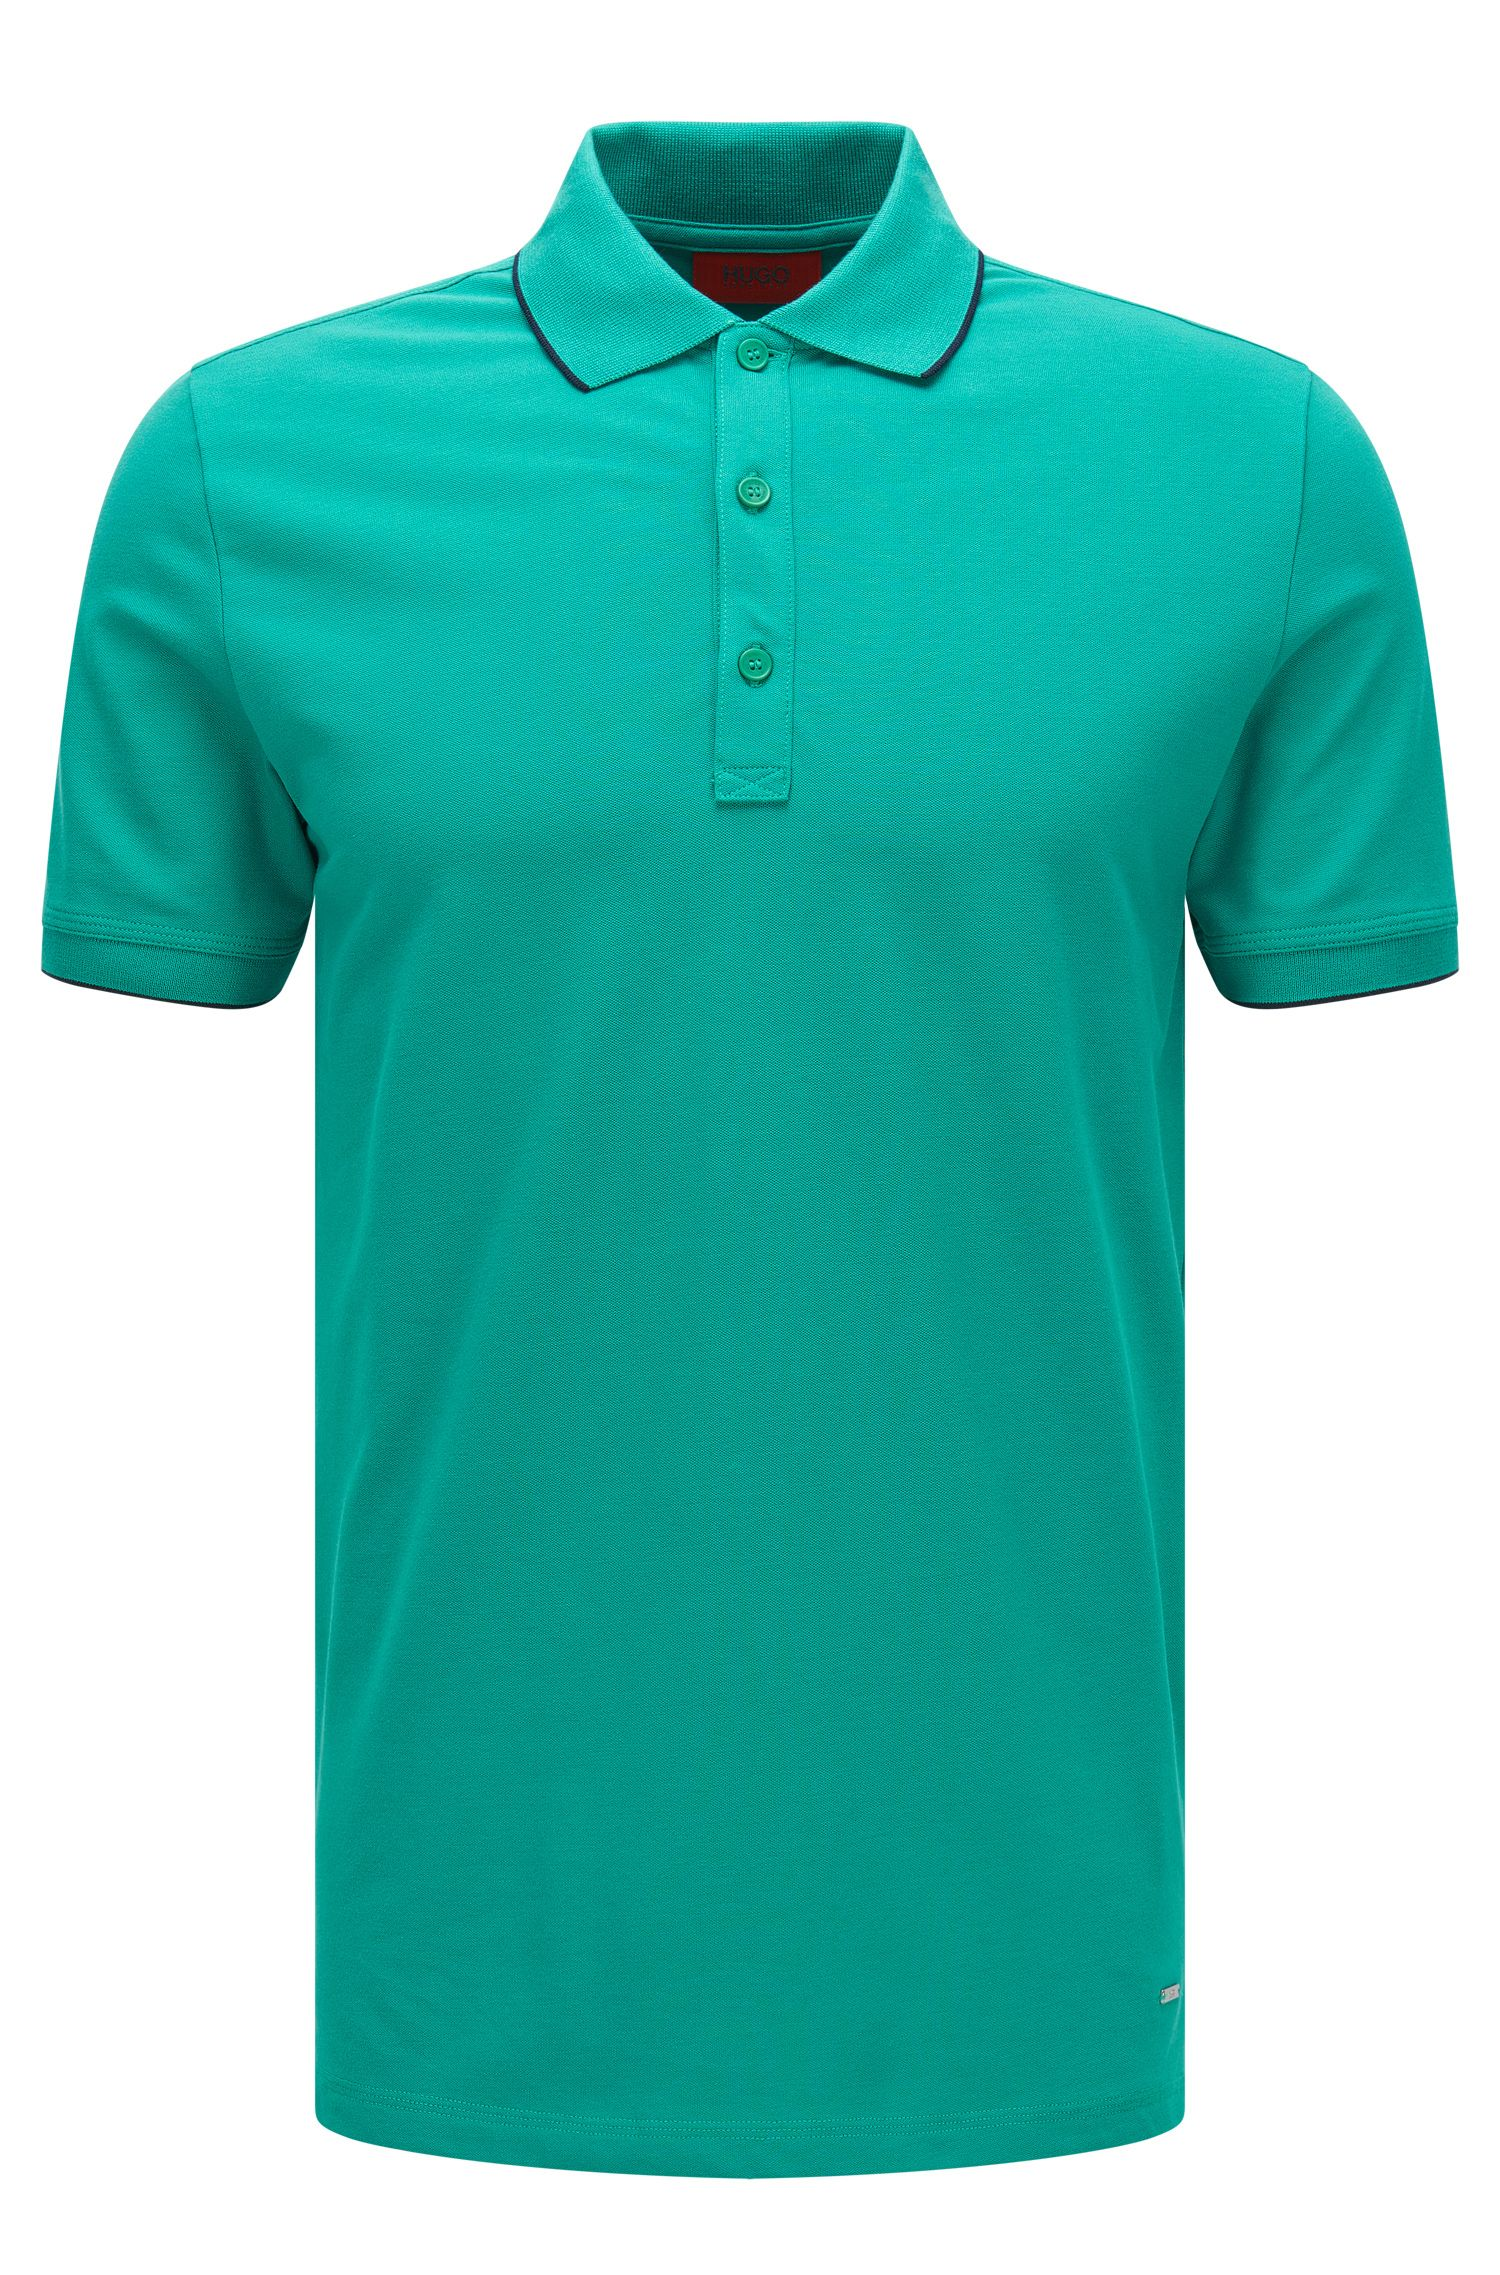 'Delorian' | Slim Fit, Stretch Cotton Polo Shirt